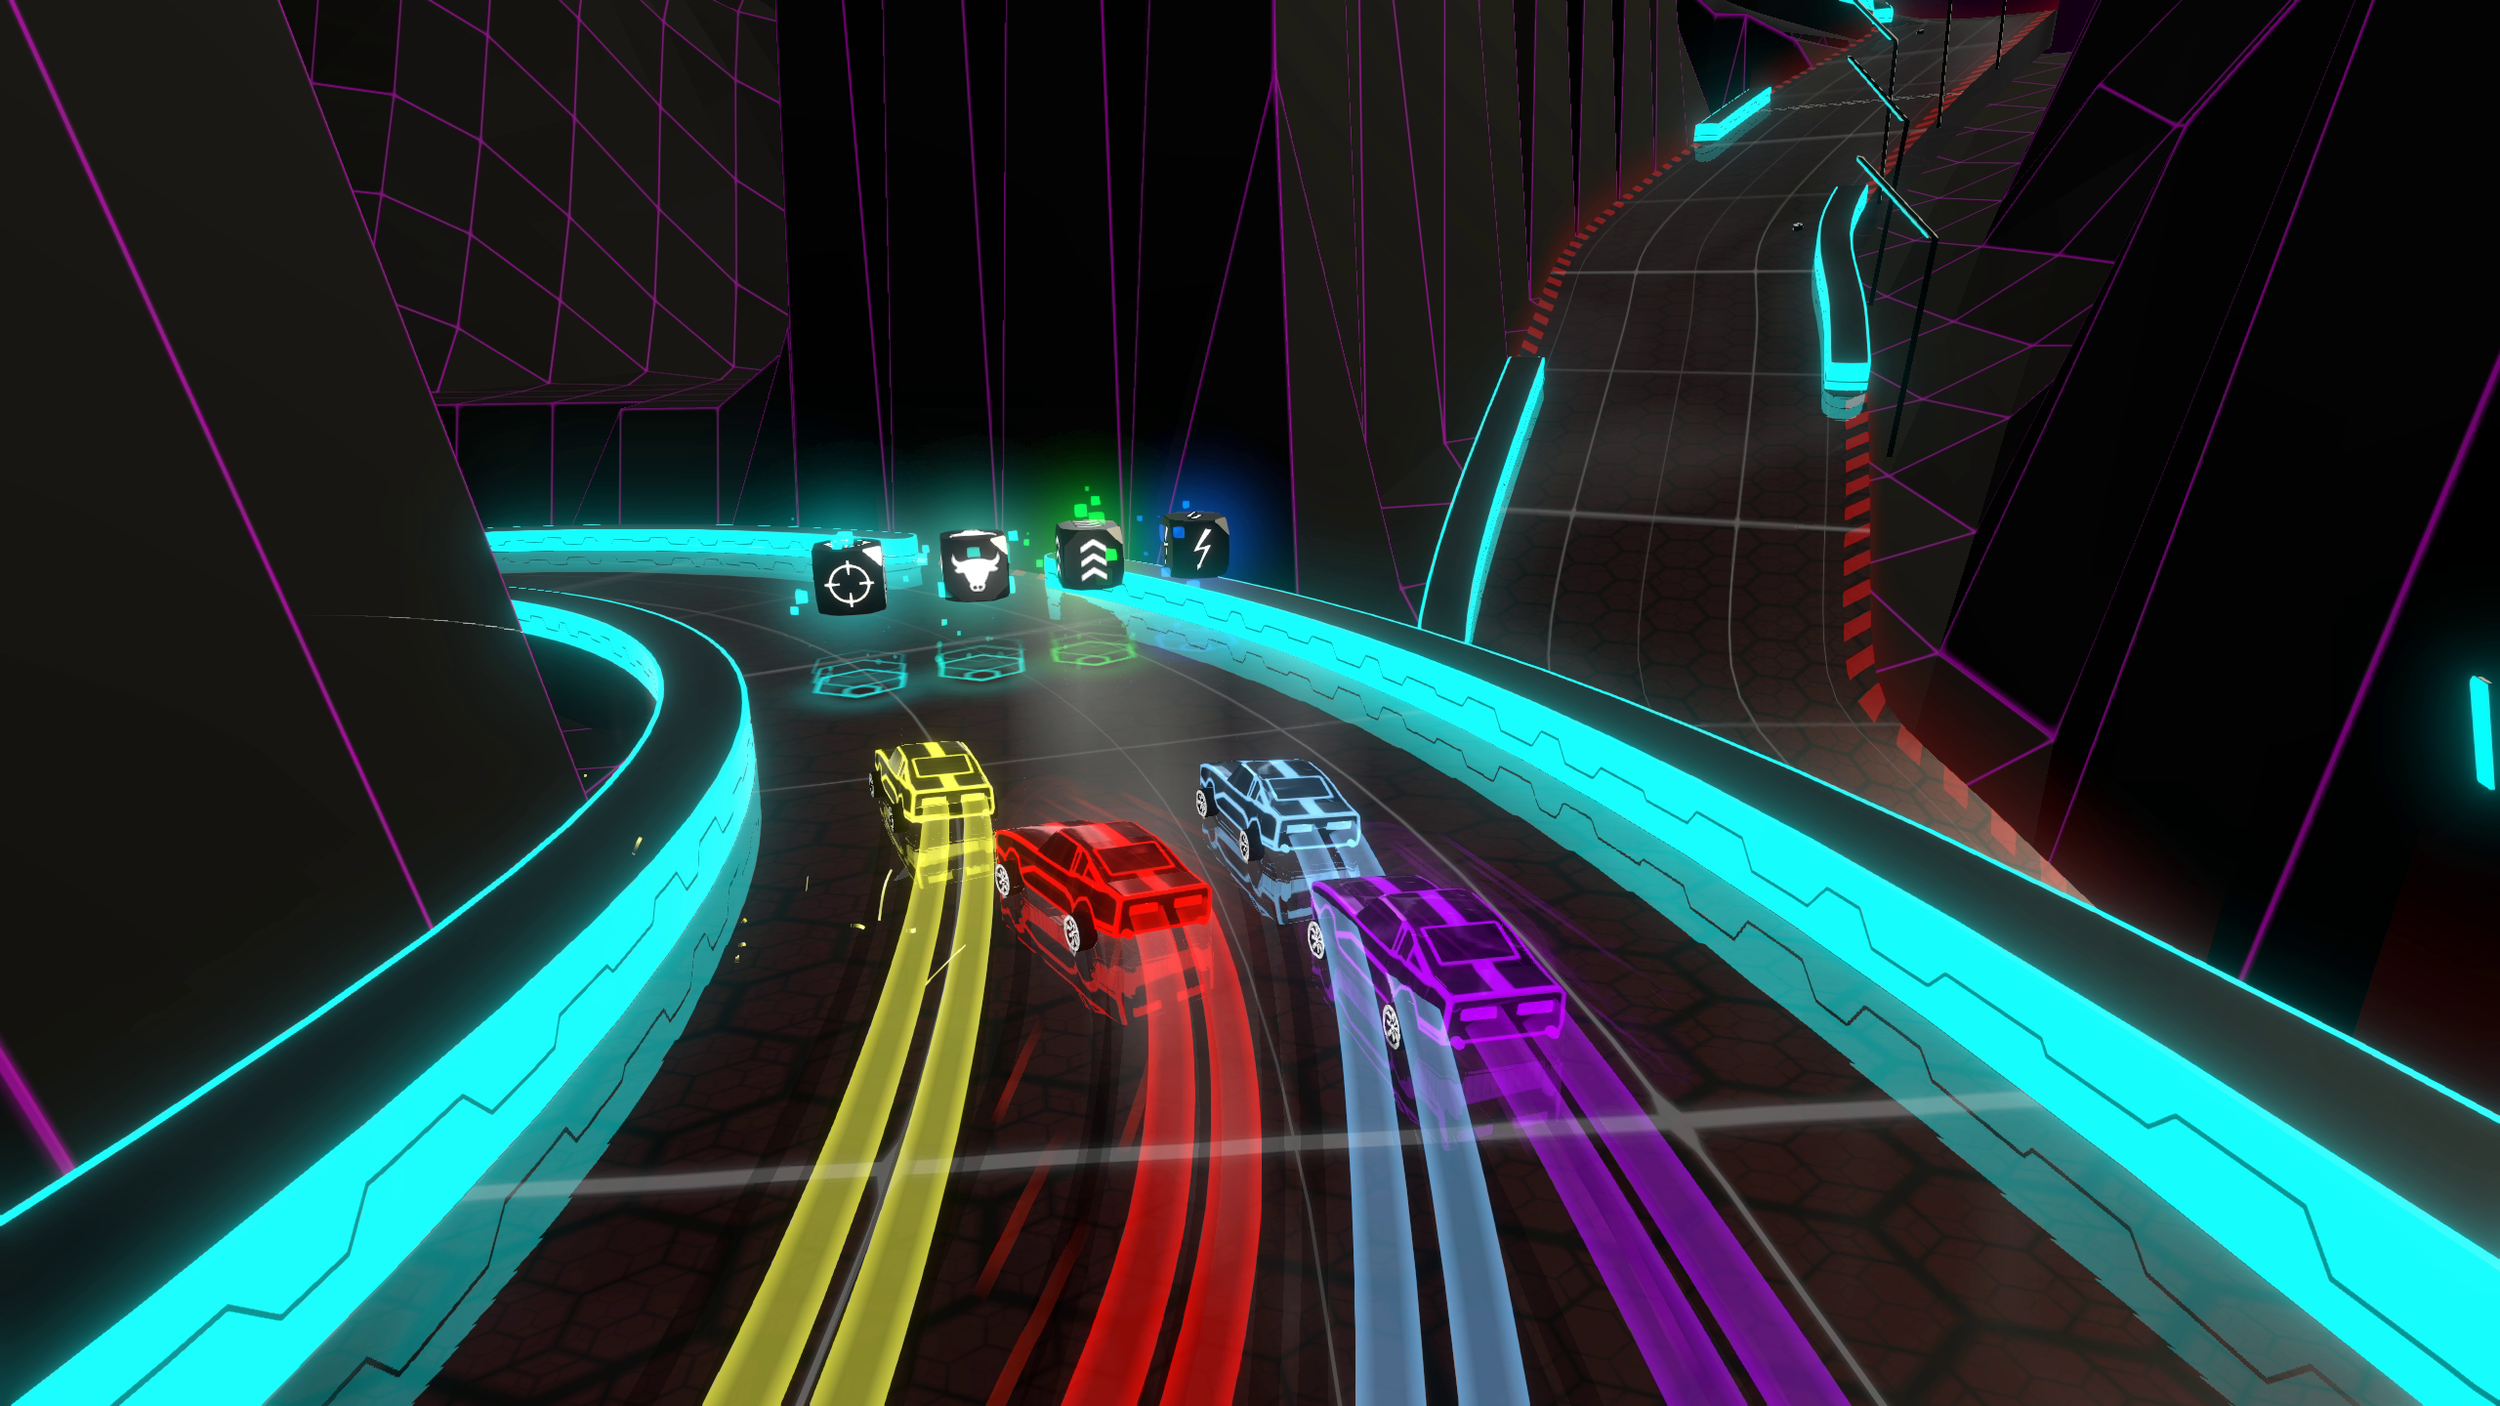 Party Crashers - Arcade combat racing meets Party Golf